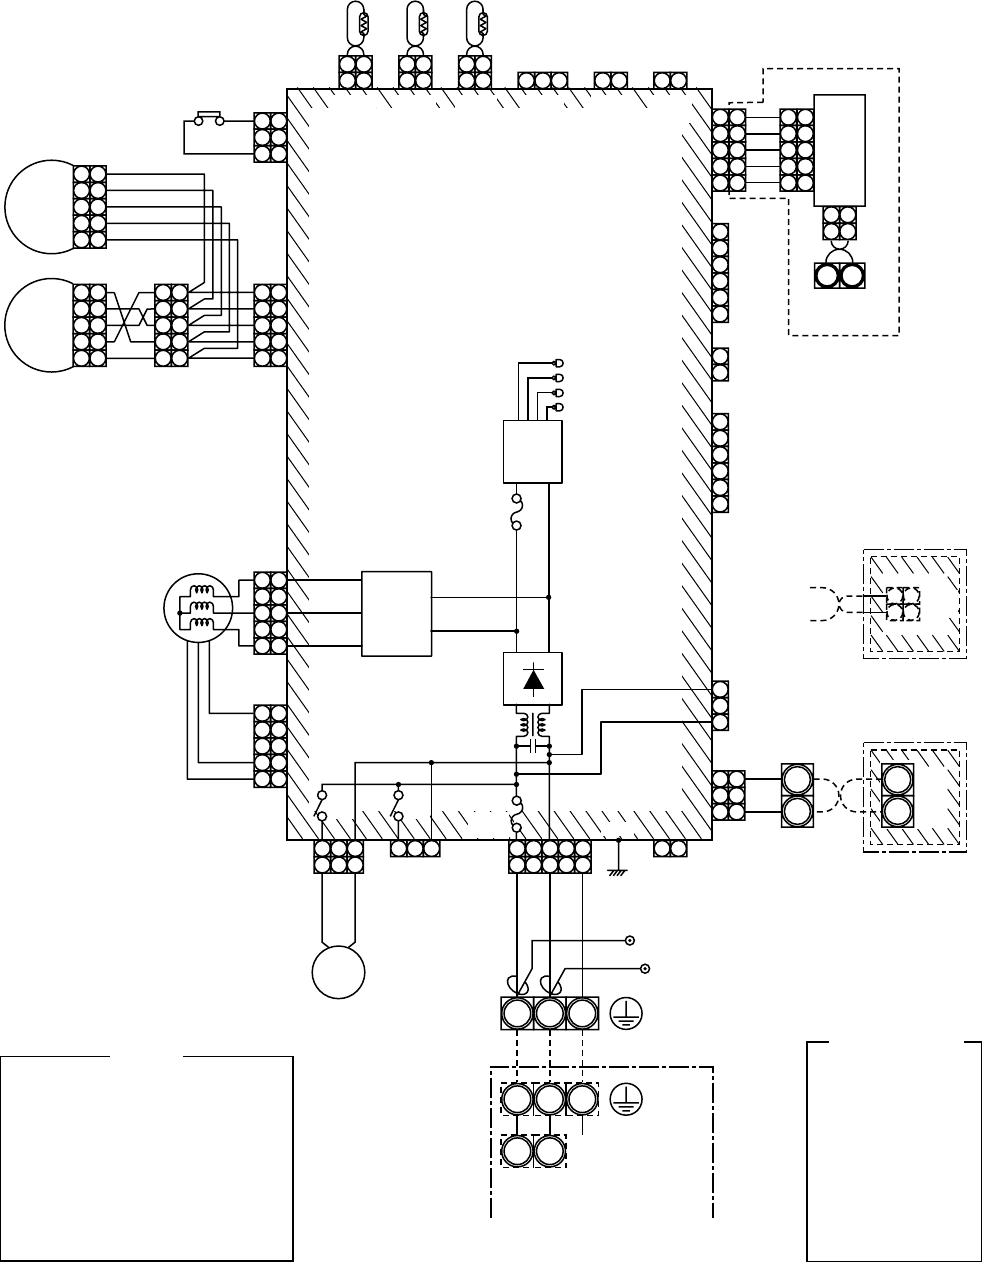 Related with infiniti m37 wiring diagram